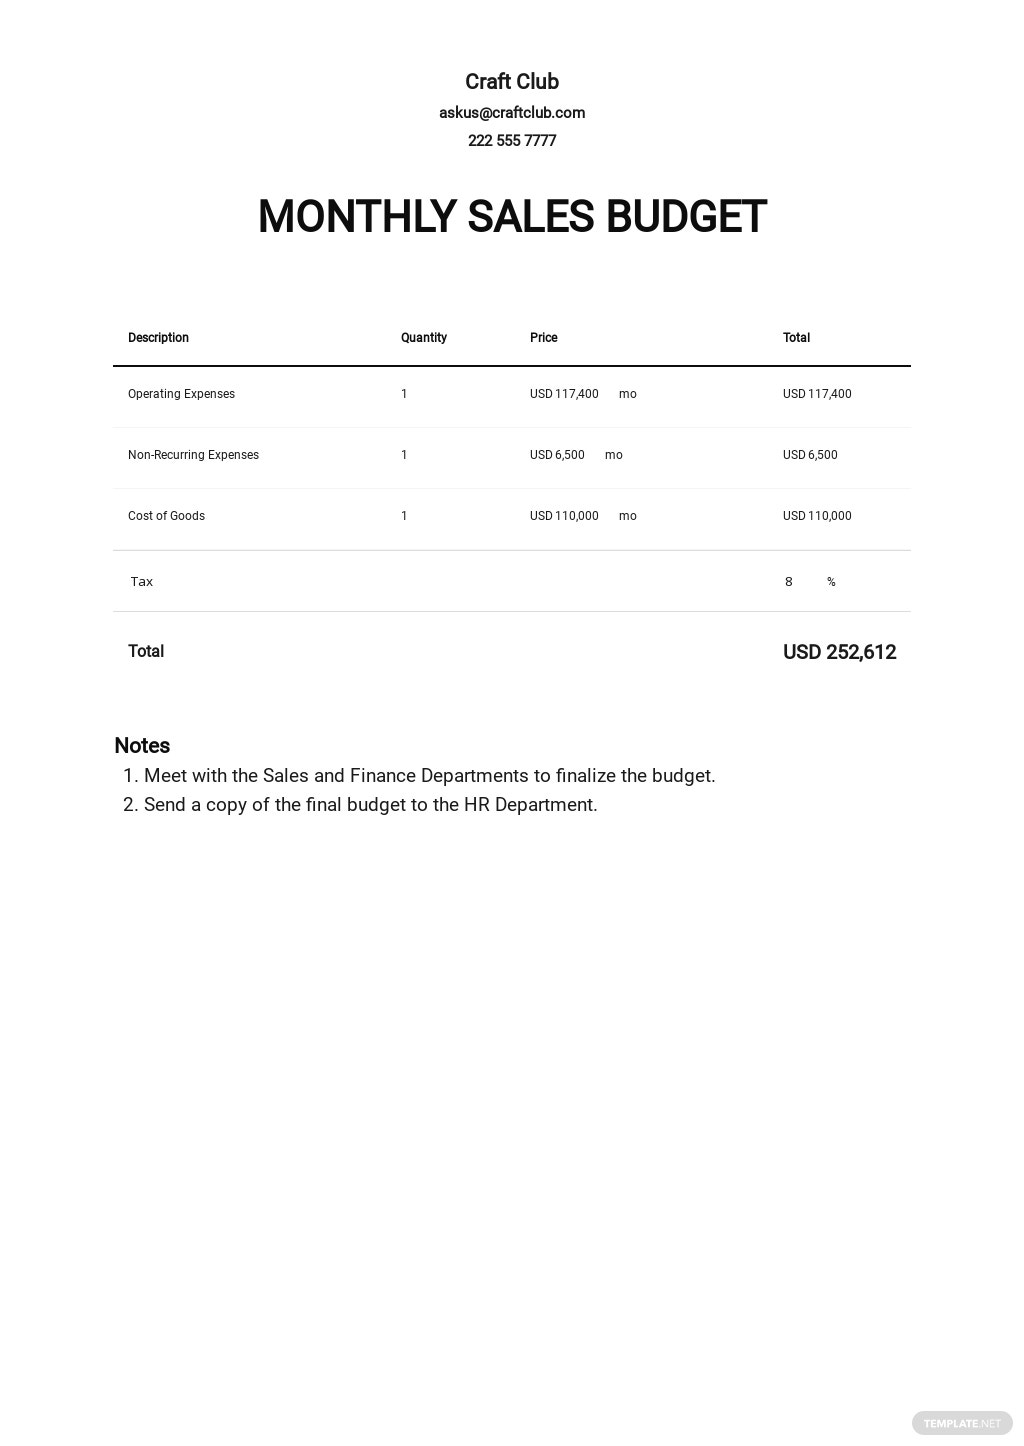 Monthly Sales Budget Template.jpe